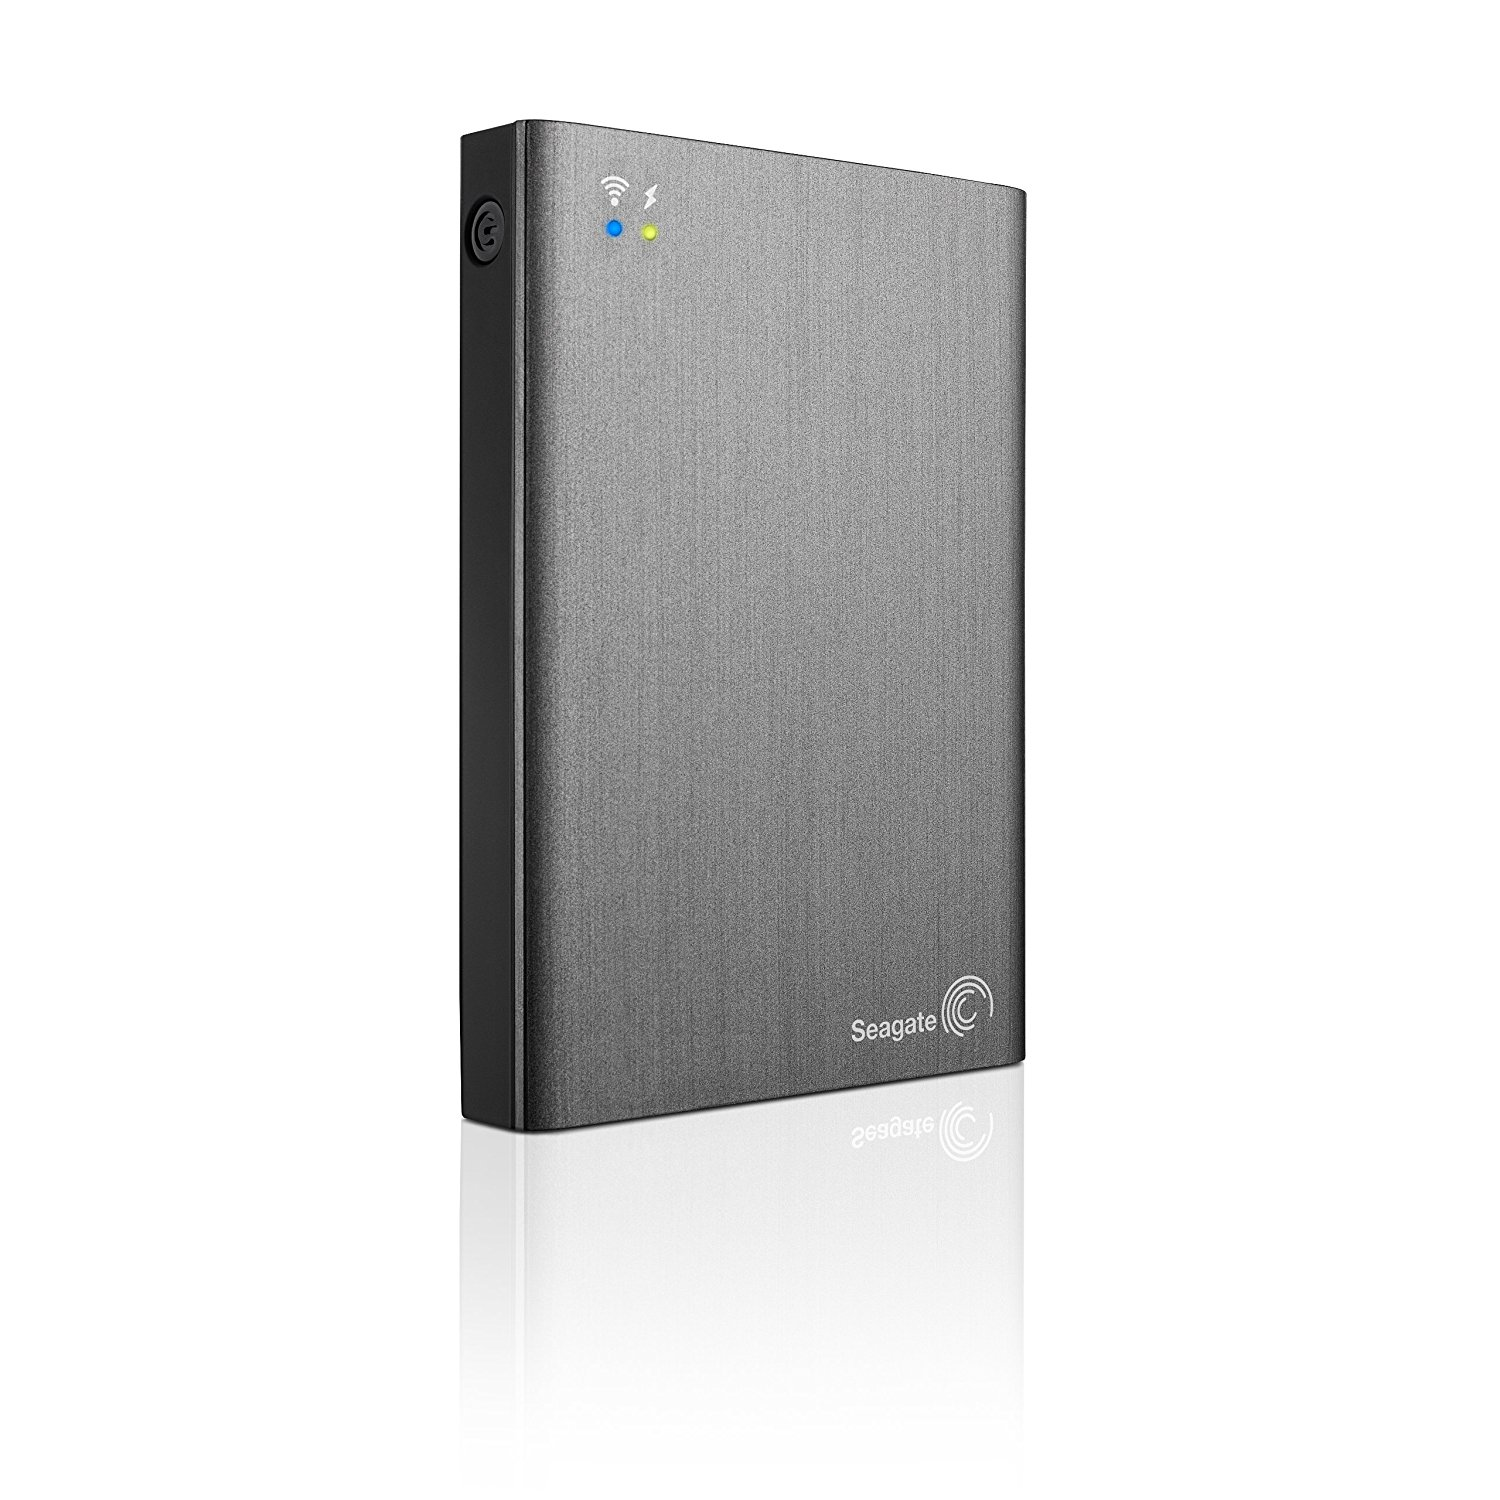 Ổ cứng di động Seagate Wireless Plus 2TB USB 3.0 (STCV2000100)